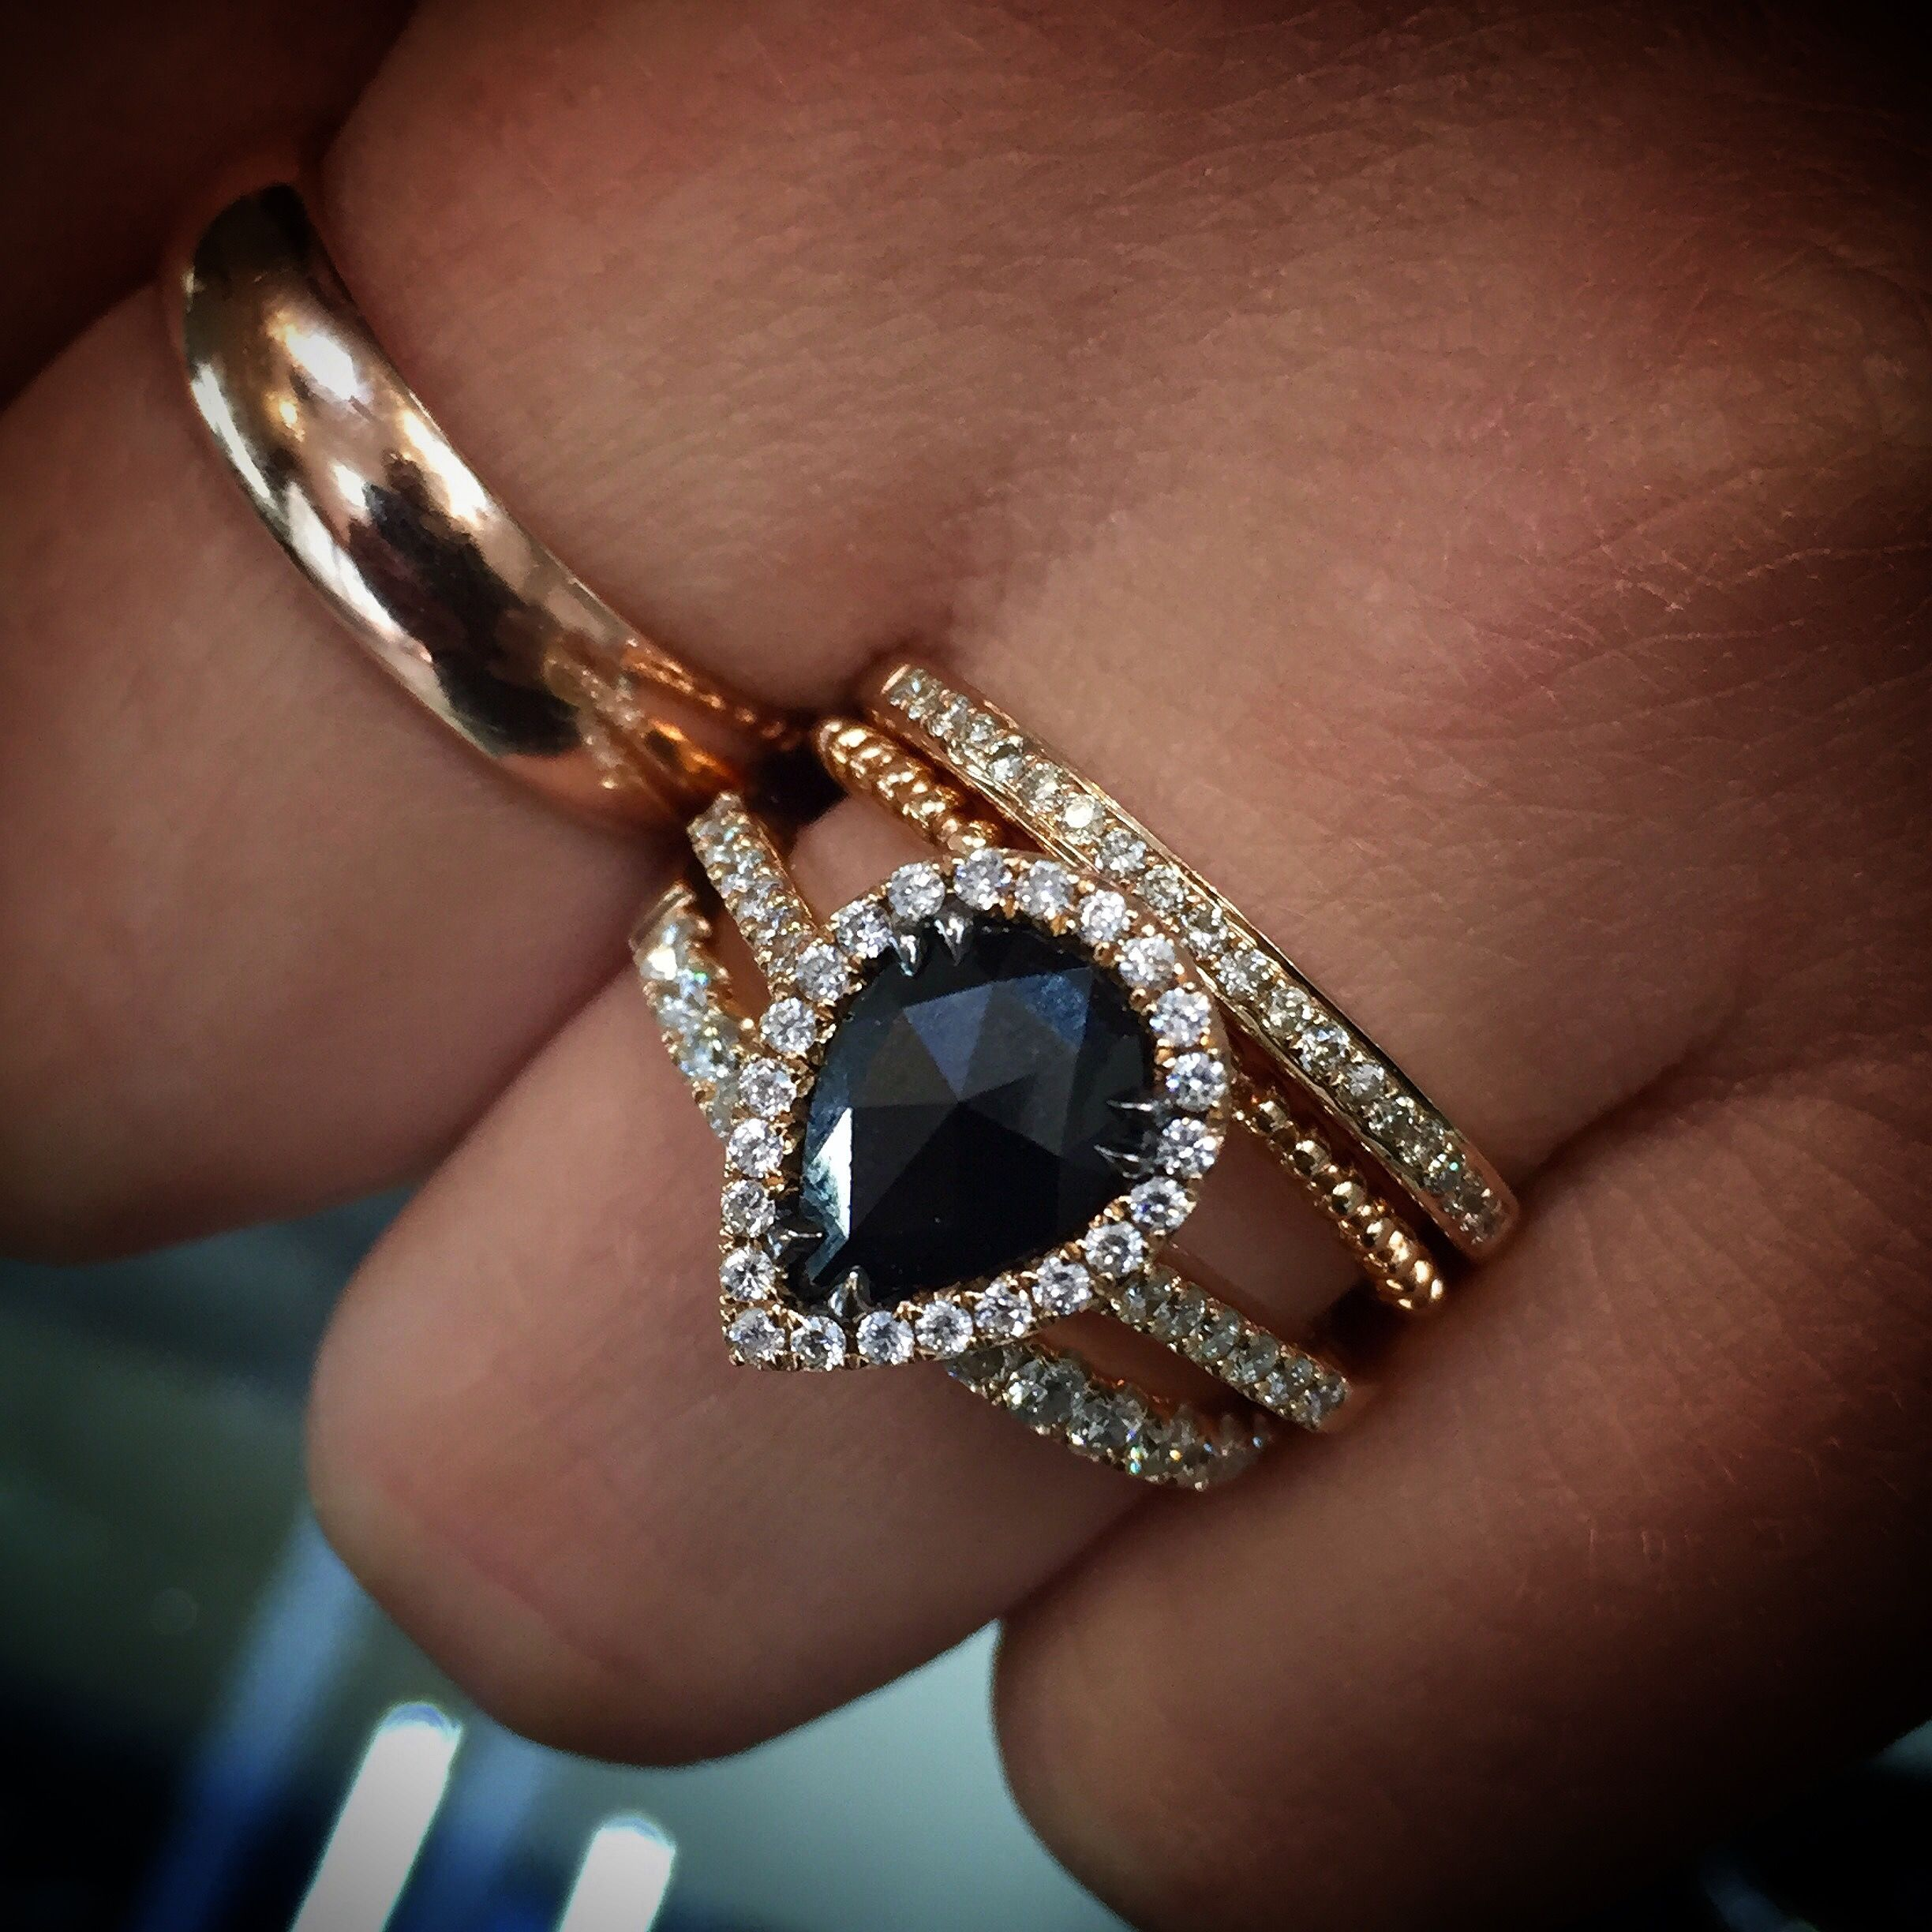 A single rose cut pear shape black diamond weighing carat sits